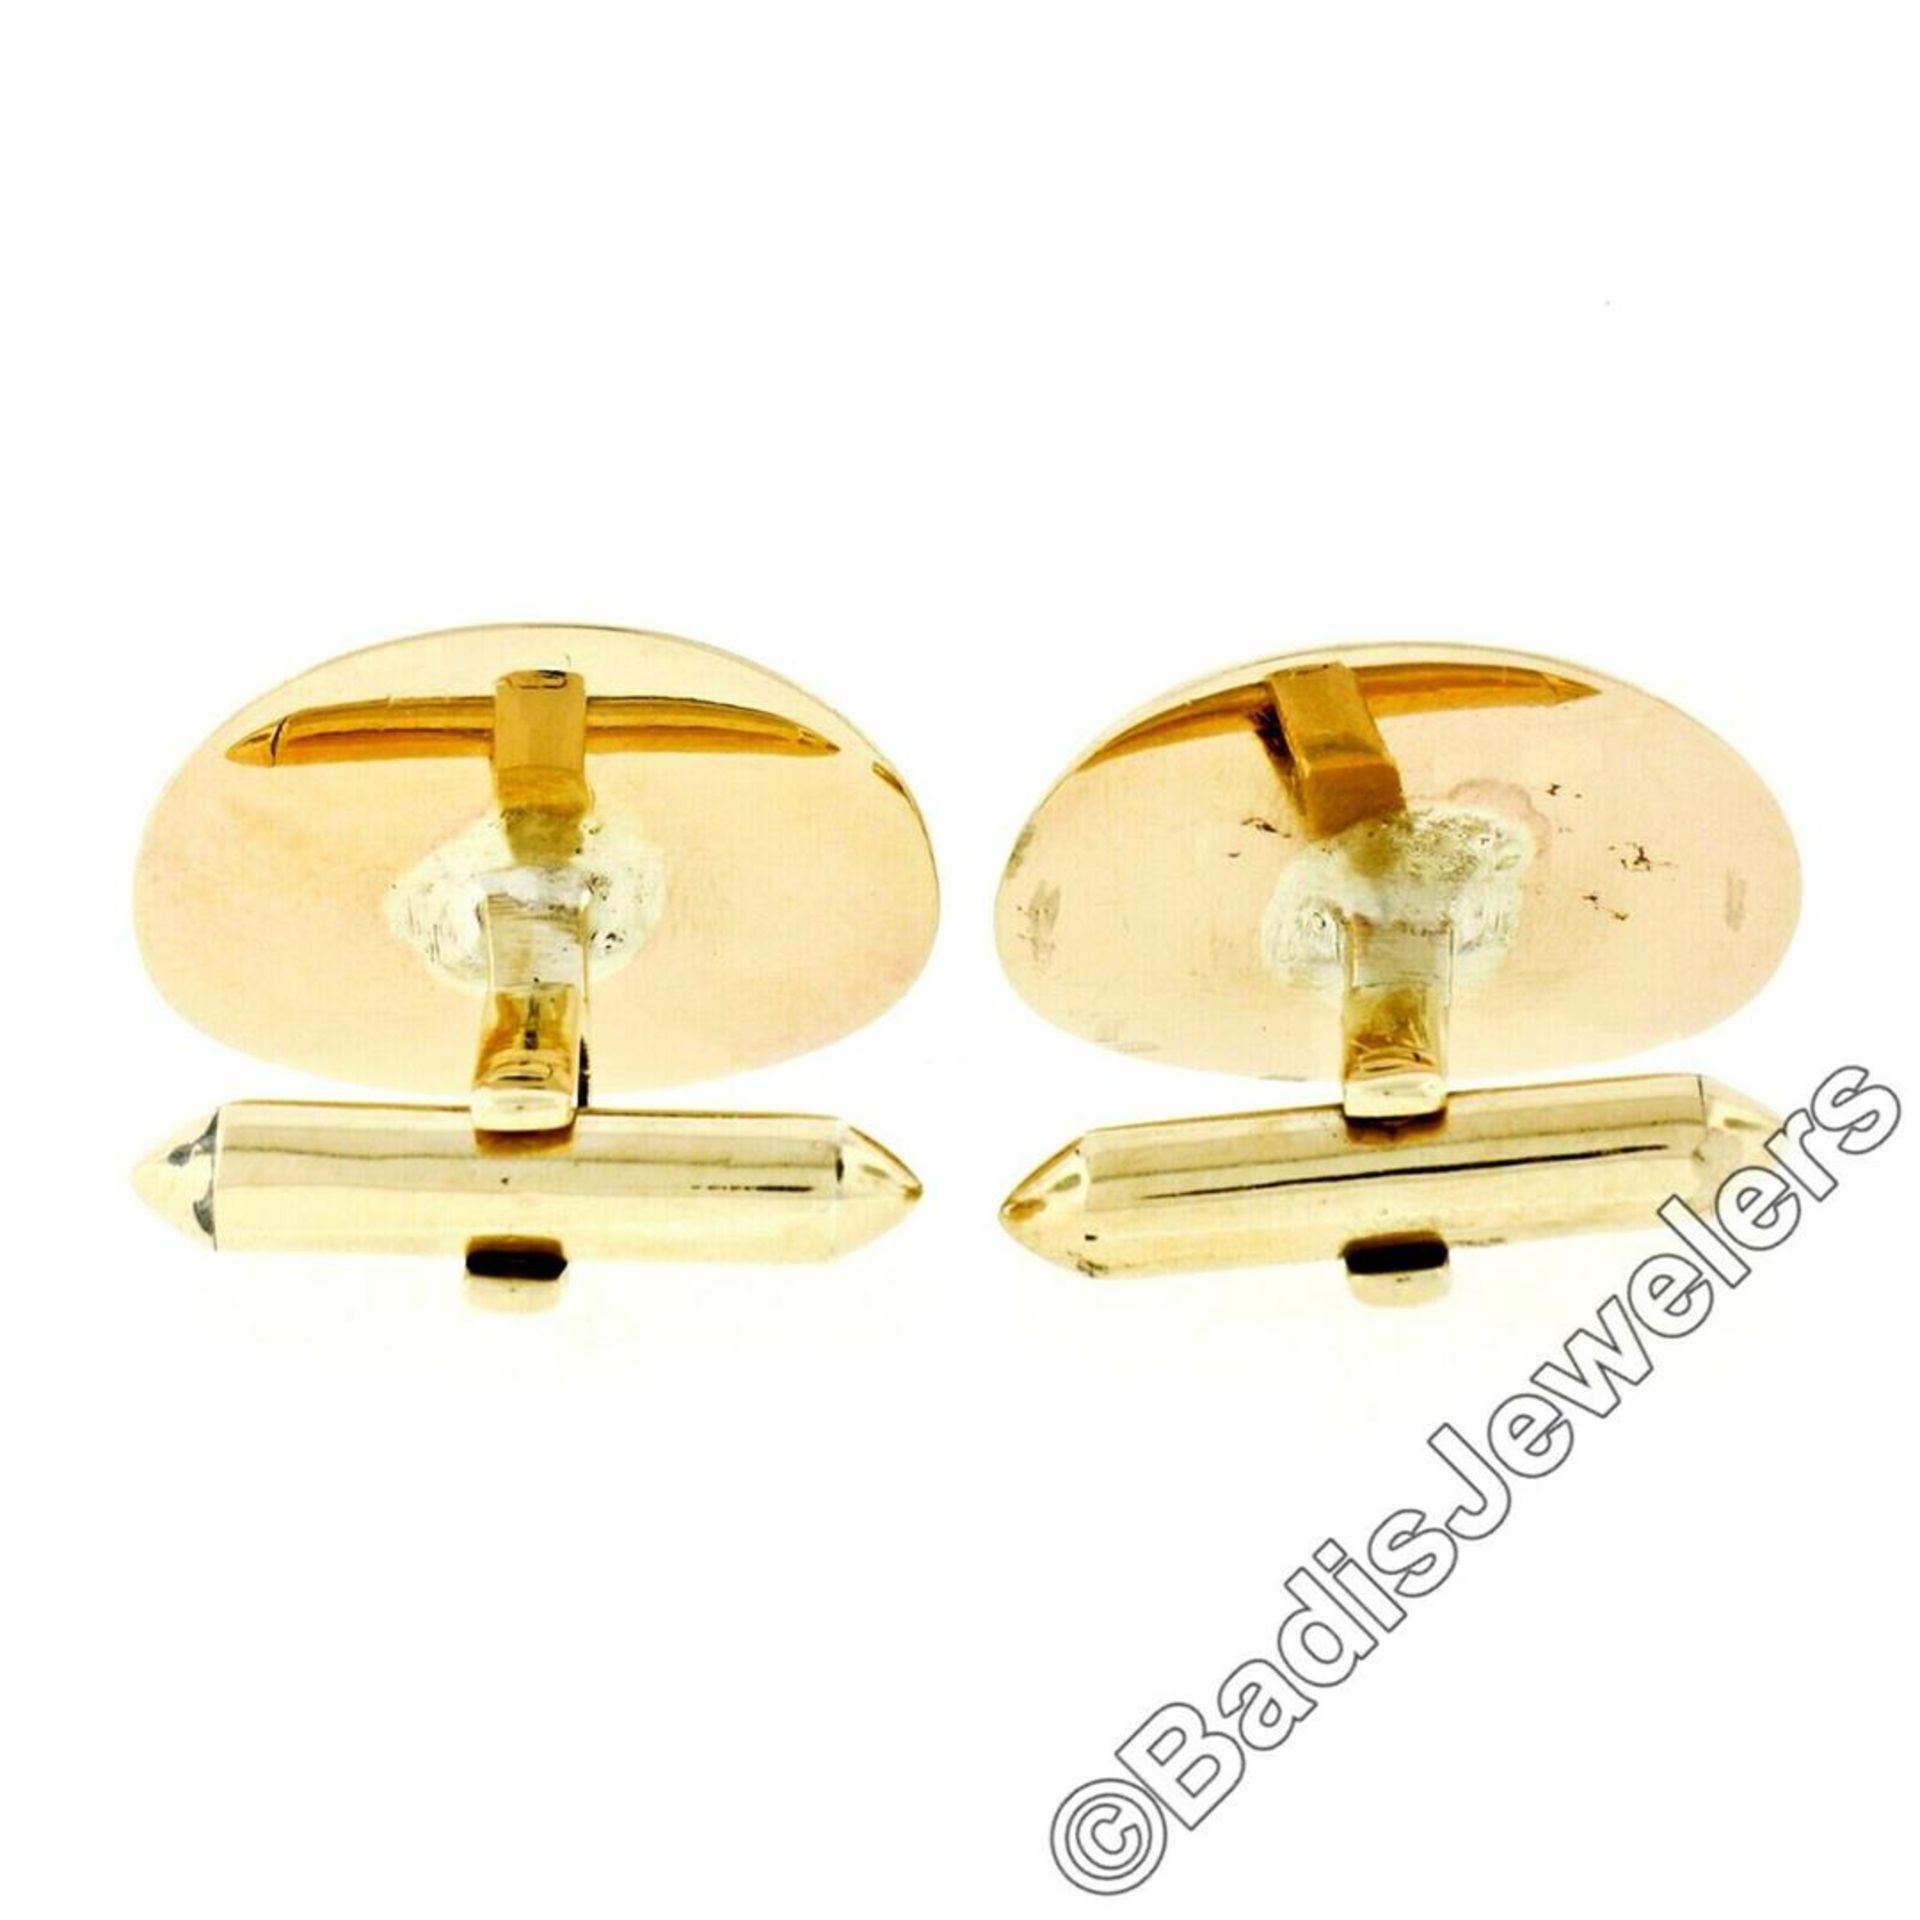 Vintage Men's 18kt Gold Oval Brown Star Sapphire Florentine Cuff Links - Image 5 of 5